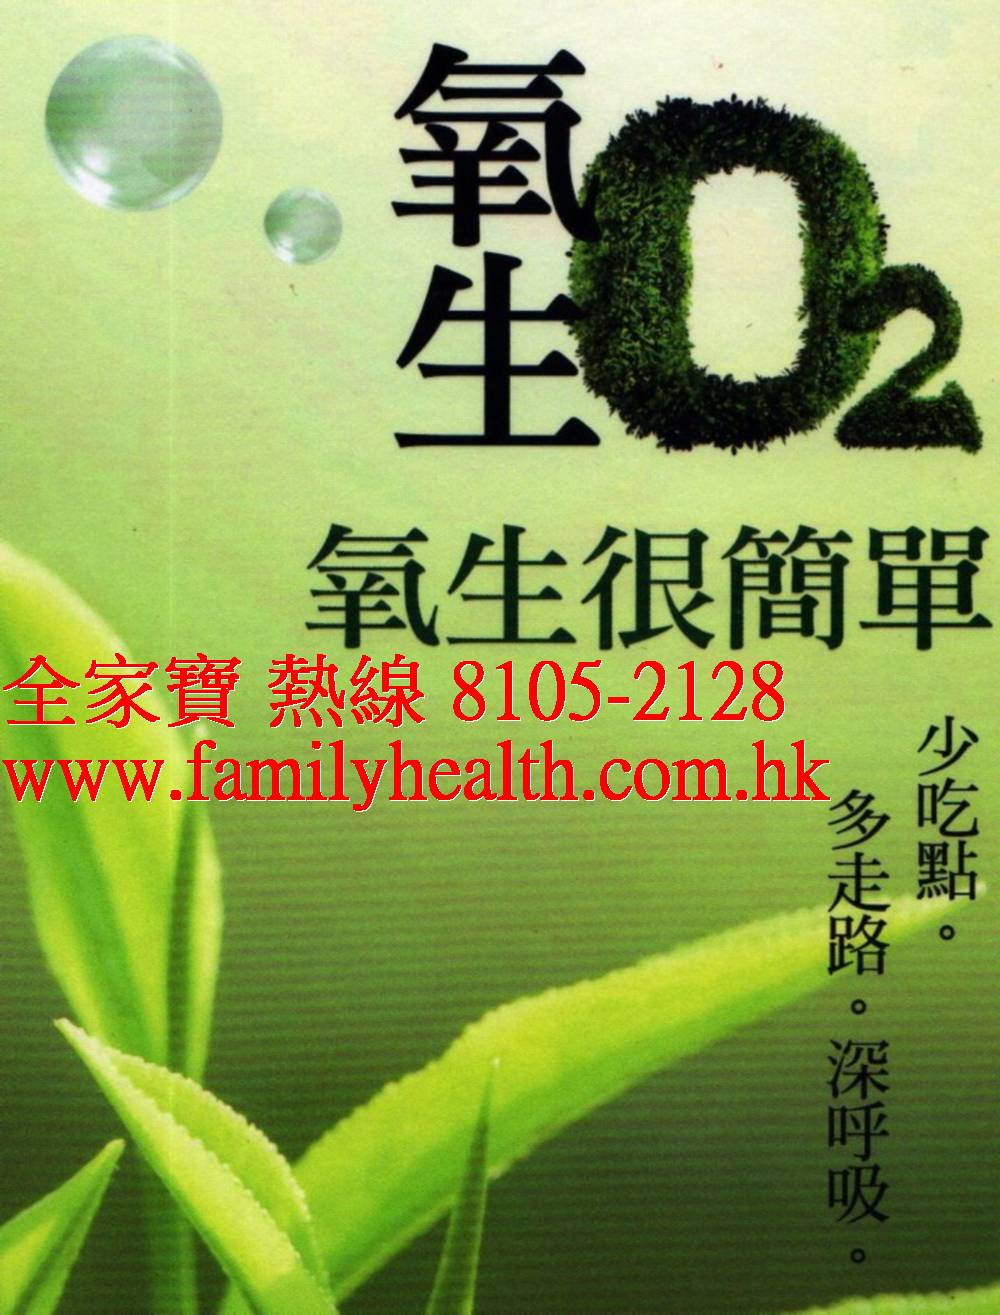 http://www.familyhealth.com.hk/files/full/871_1.jpg